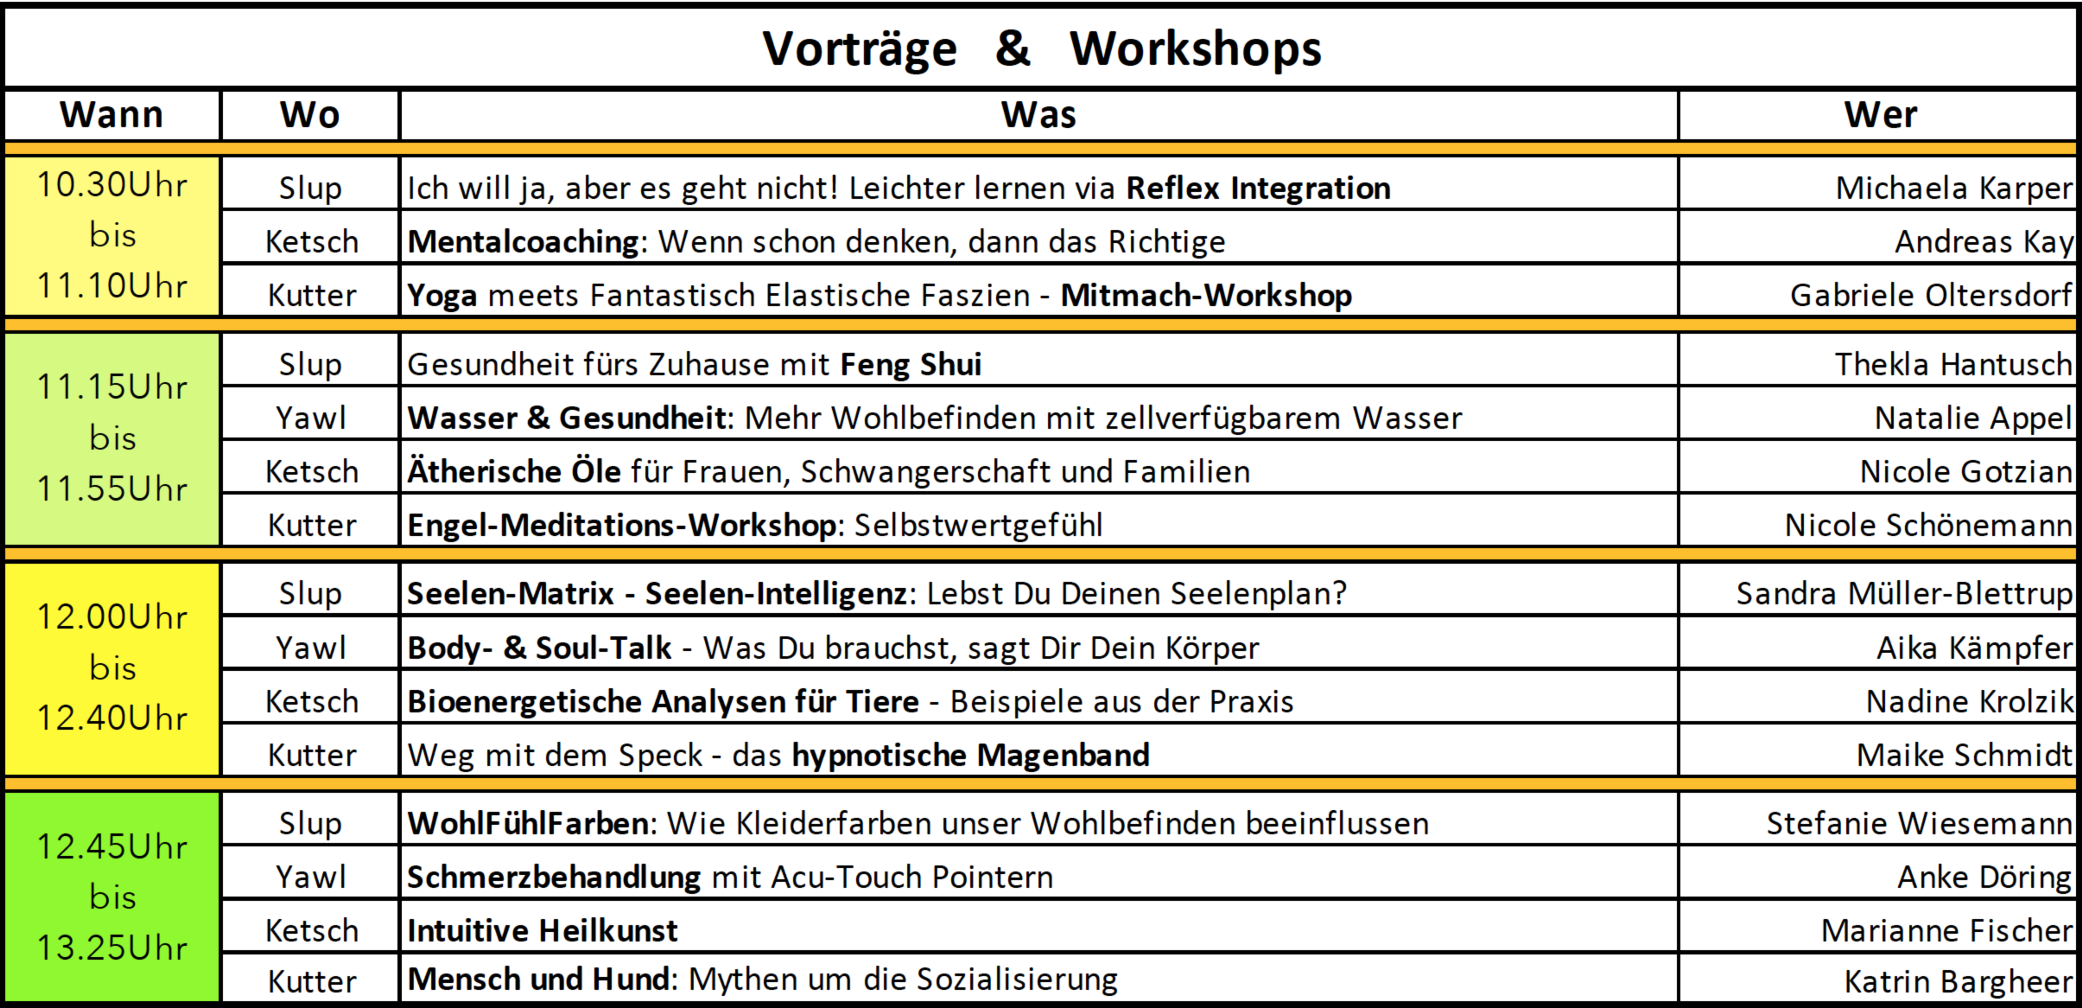 Vortrags- & Workshop-Programm Teil 1